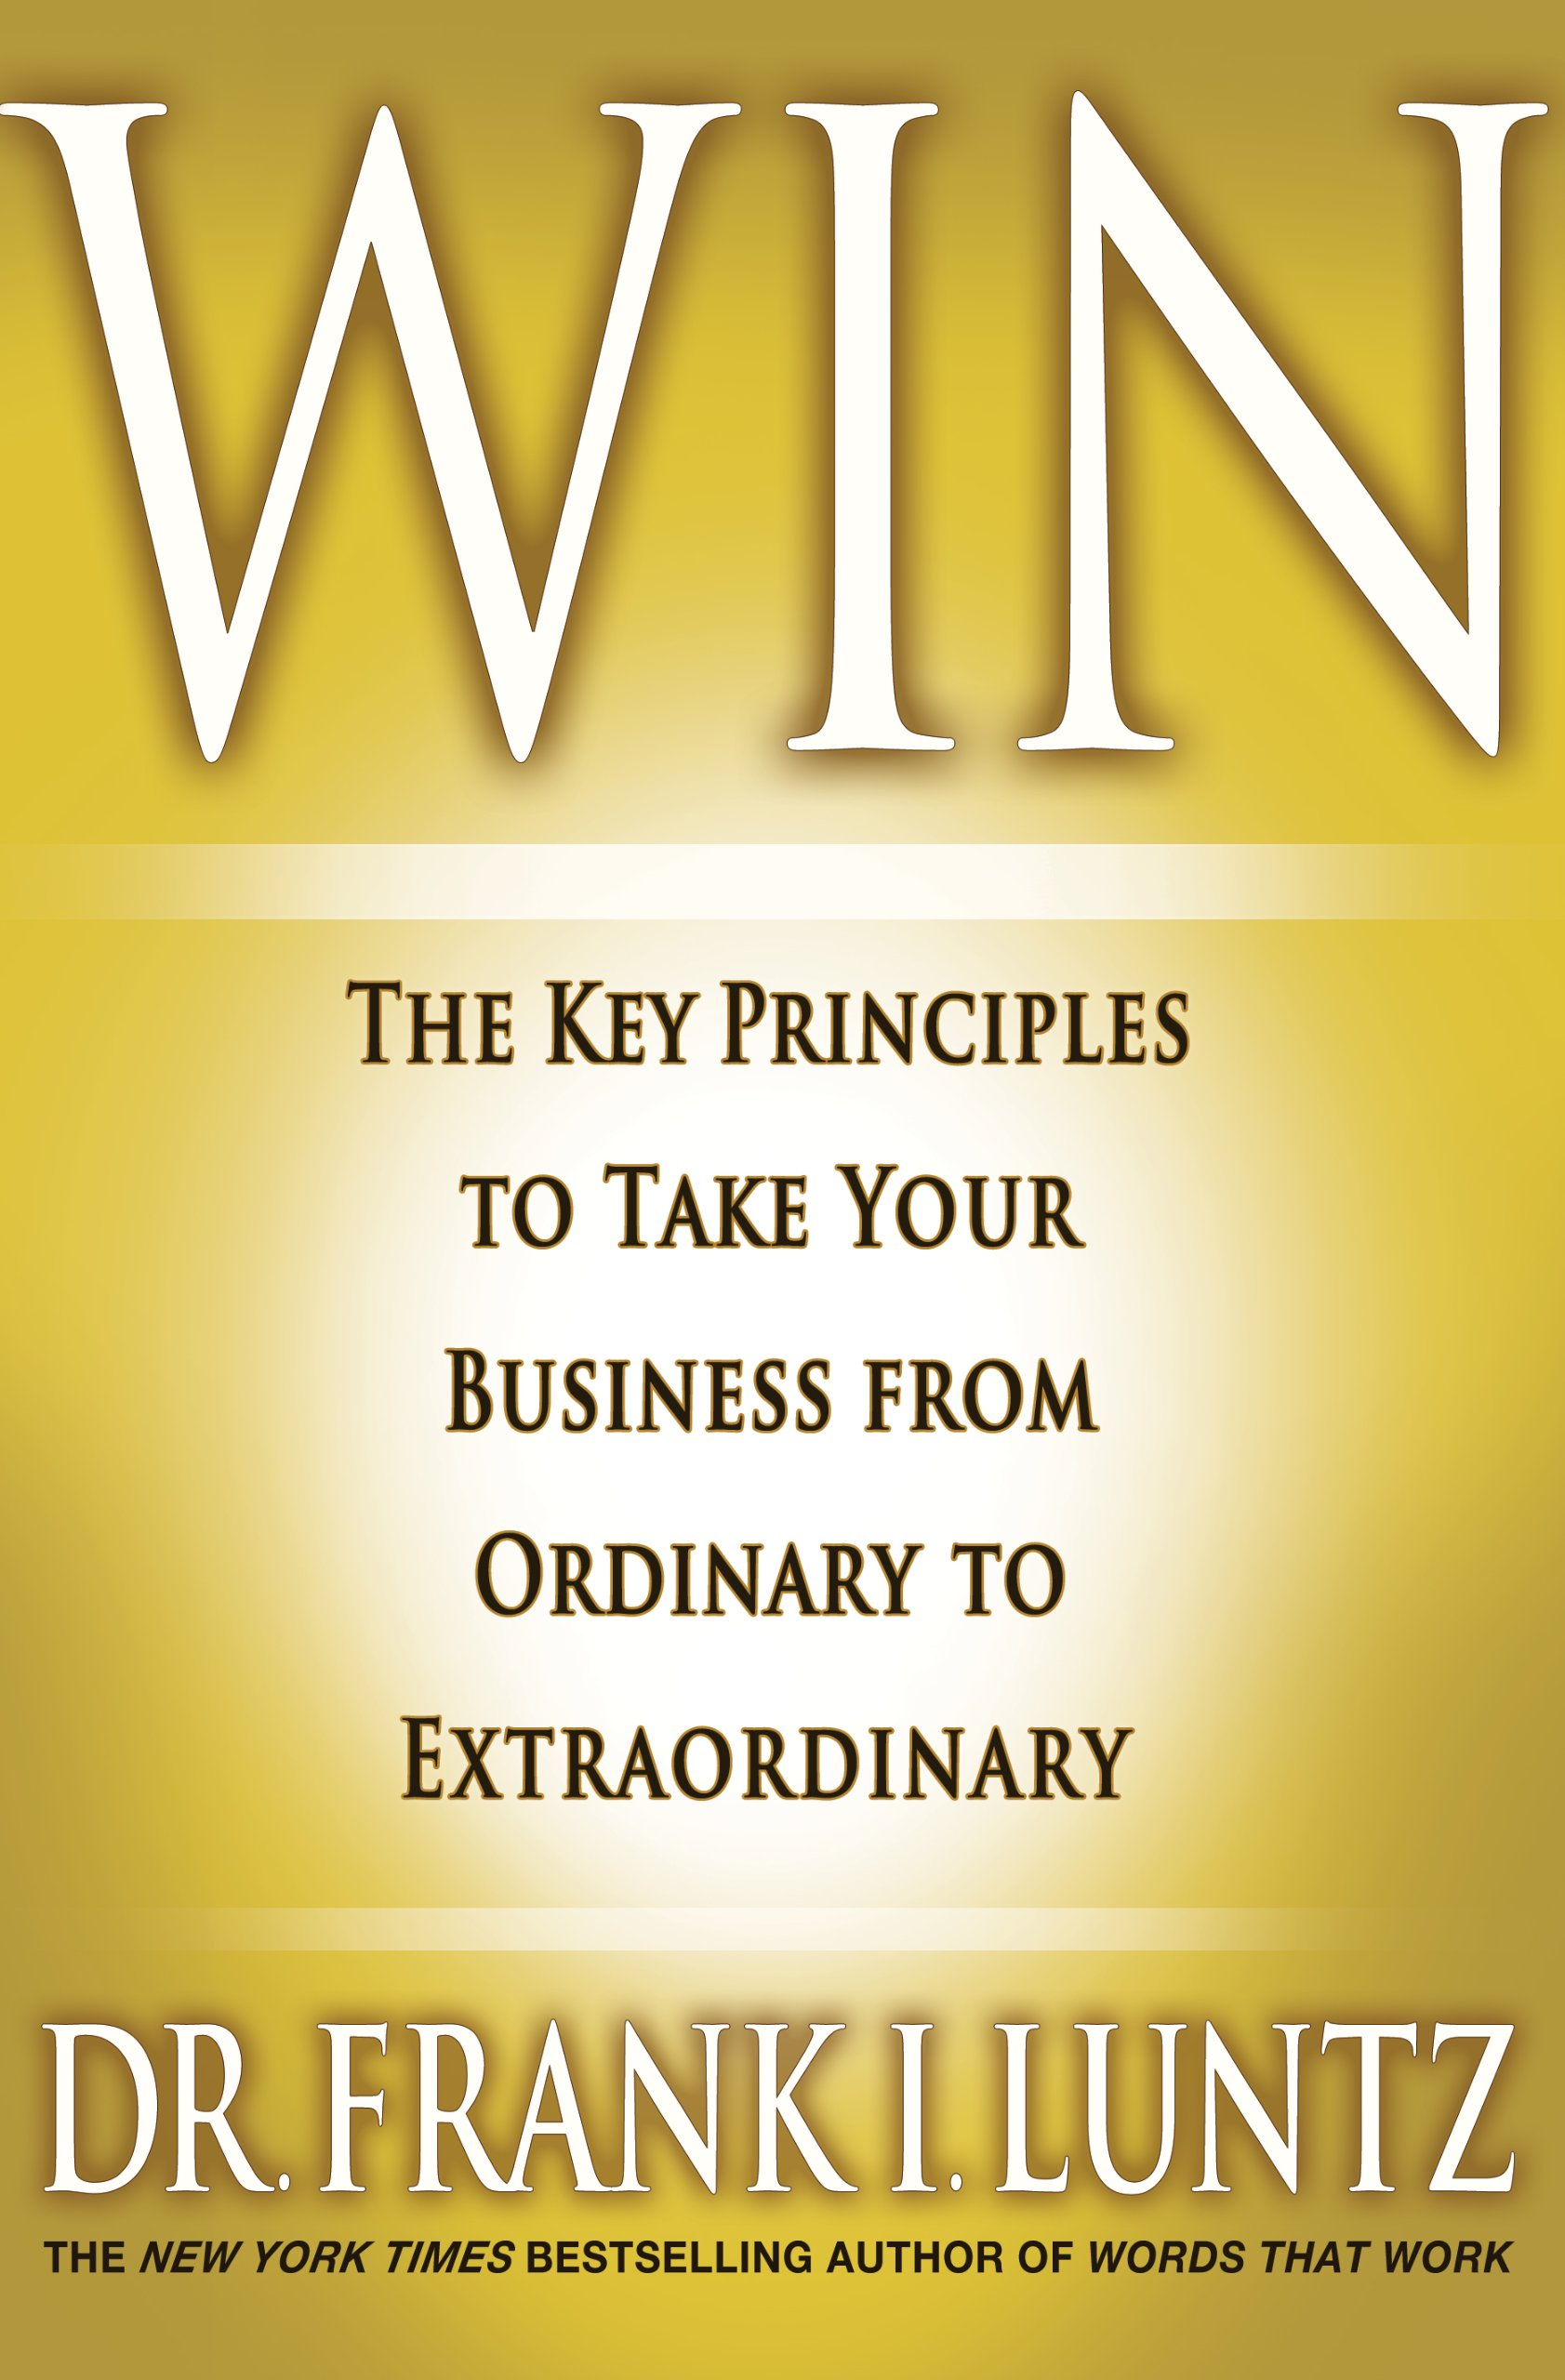 Win: The Key Principles to Take Your Business from Ordinary to  Extraordinary: Frank I. Luntz: 9781401323998: Amazon.com: Books